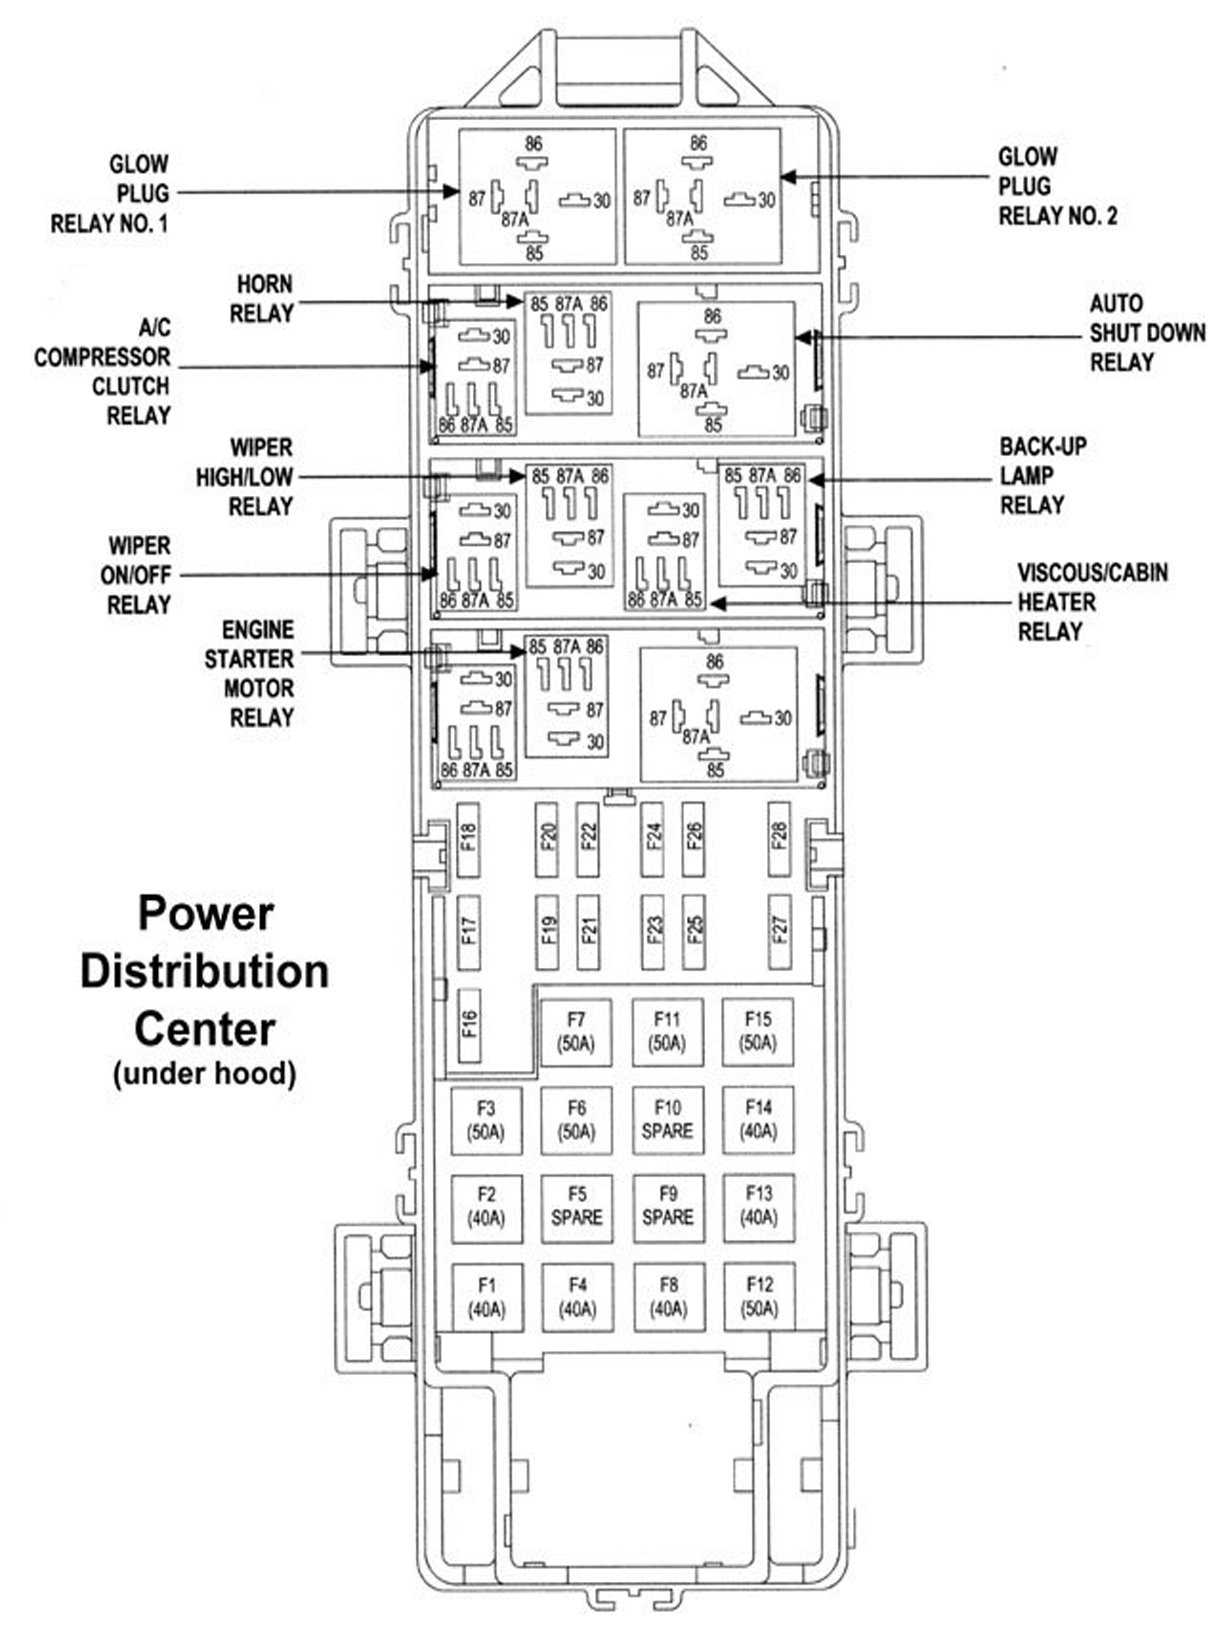 Jeep Grand Cherokee 1999 2004 Fuse Box Diagram 397760 on ford transmission fuse